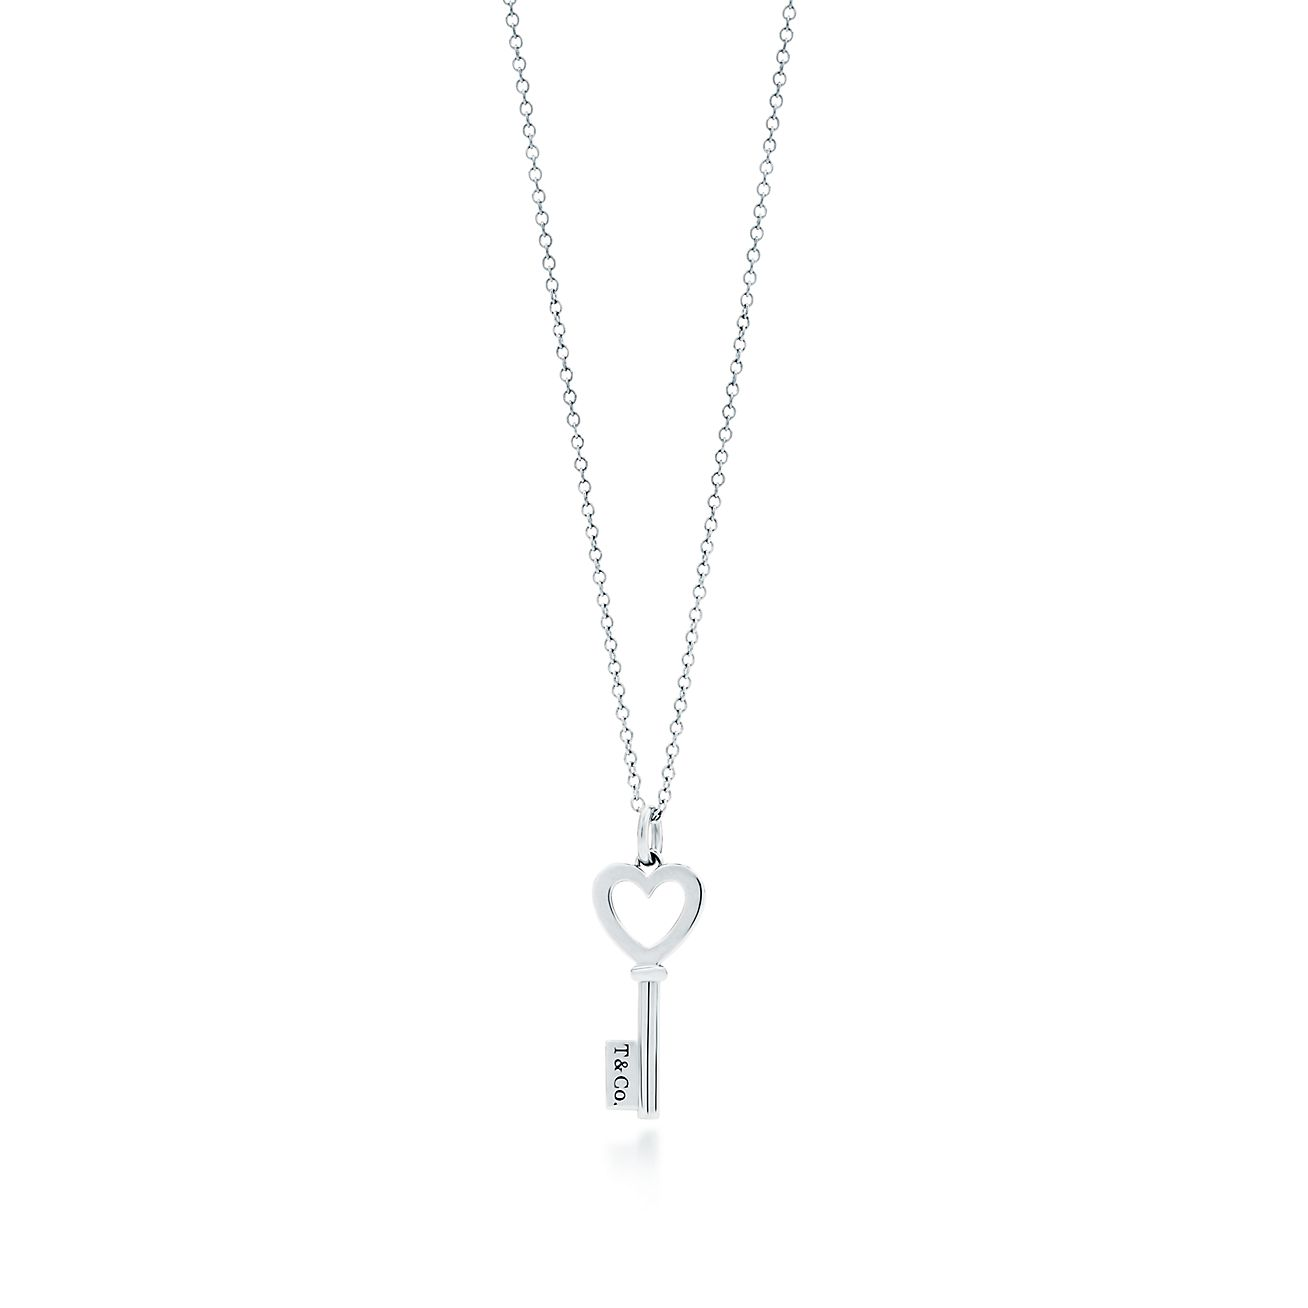 Tiffany Keys Return to Tiffany heart key pendant in sterling silver Tiffany & Co. byiYGT391m